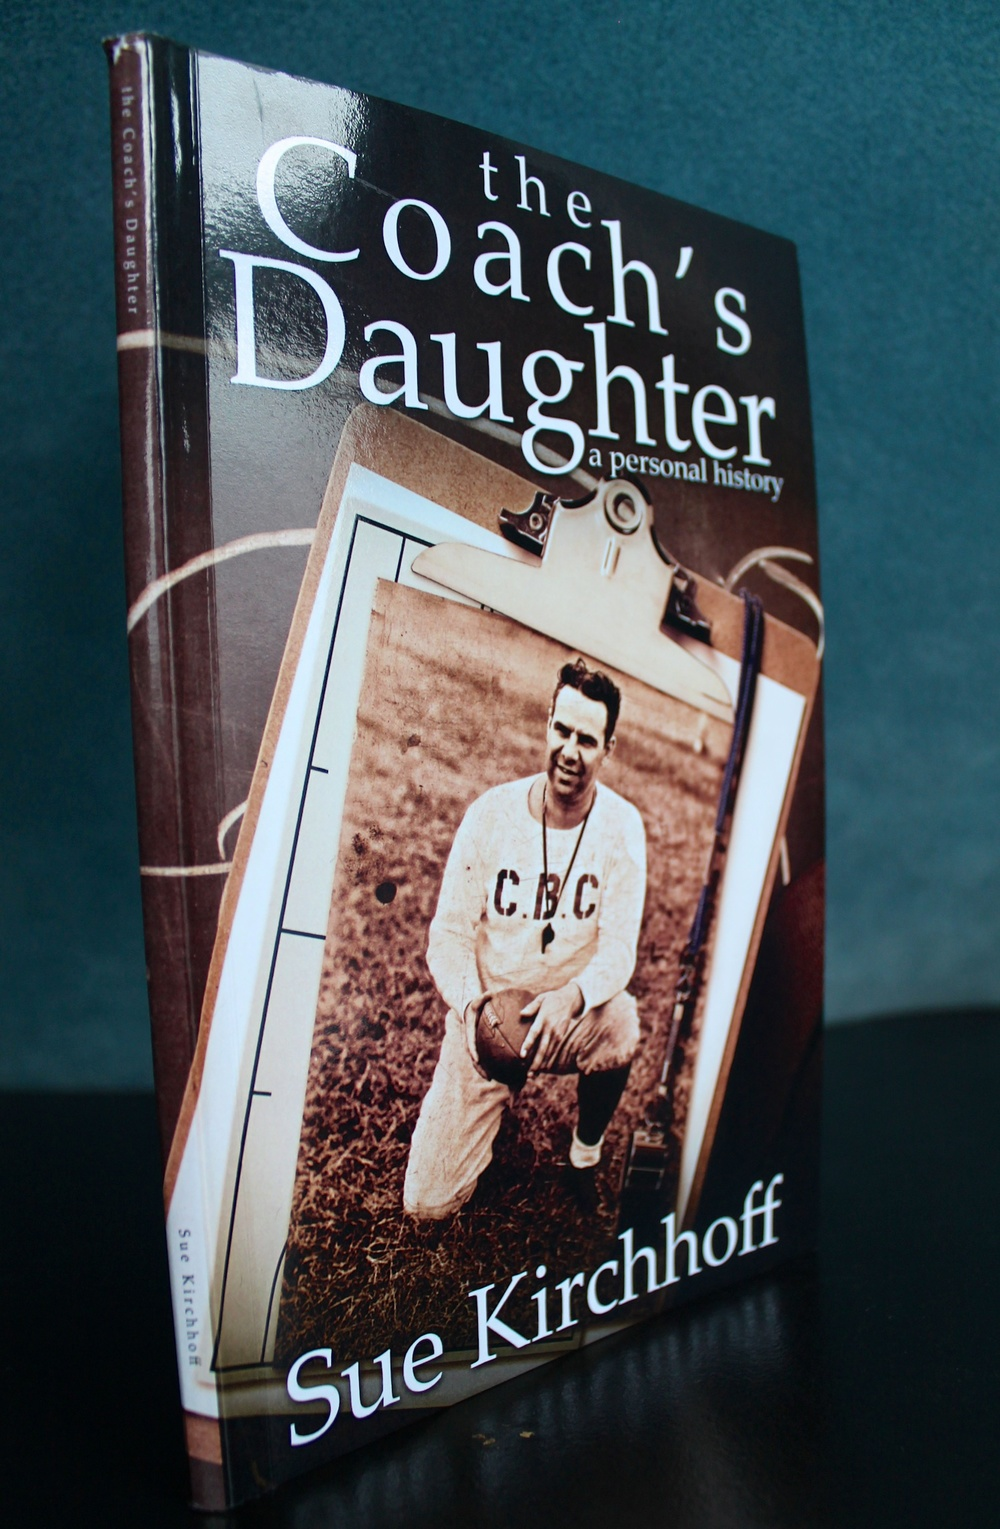 Coach's Daughter - cover Photo by Christian McDonald